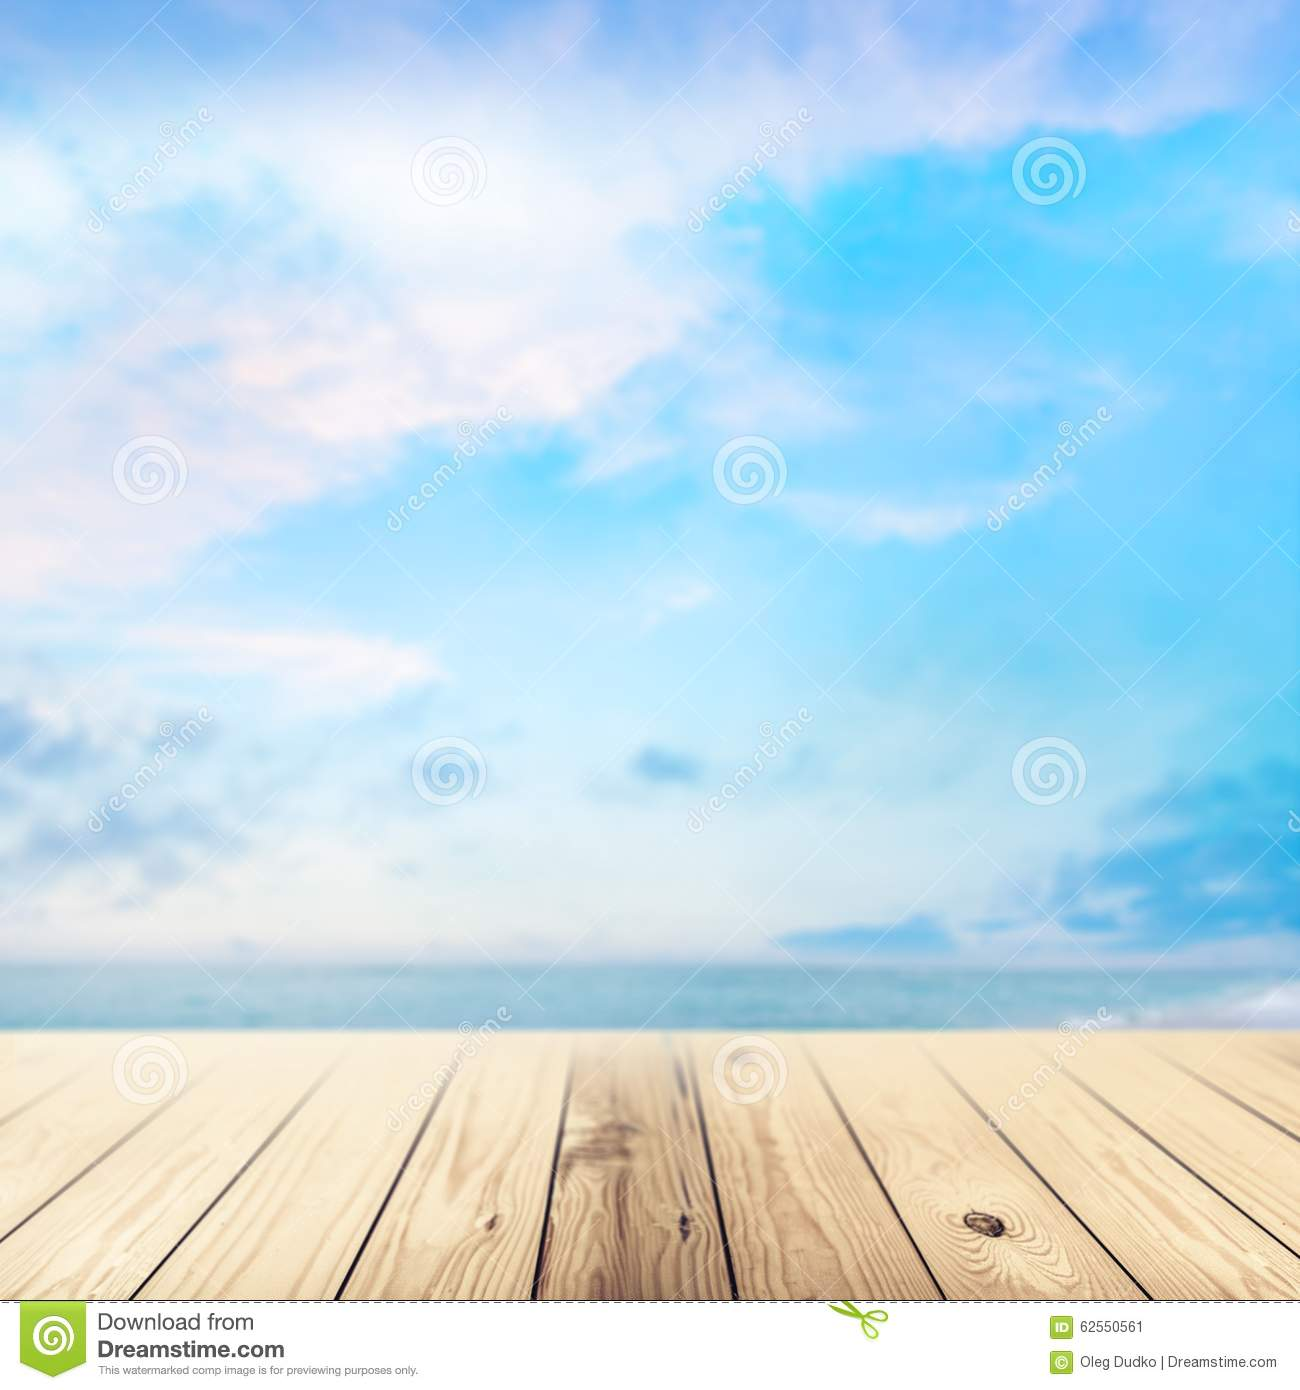 Wood Floor On Beach Sea And Blue Sky For Background Stock: Background Stock Image. Image Of Cloud, Water, Relax